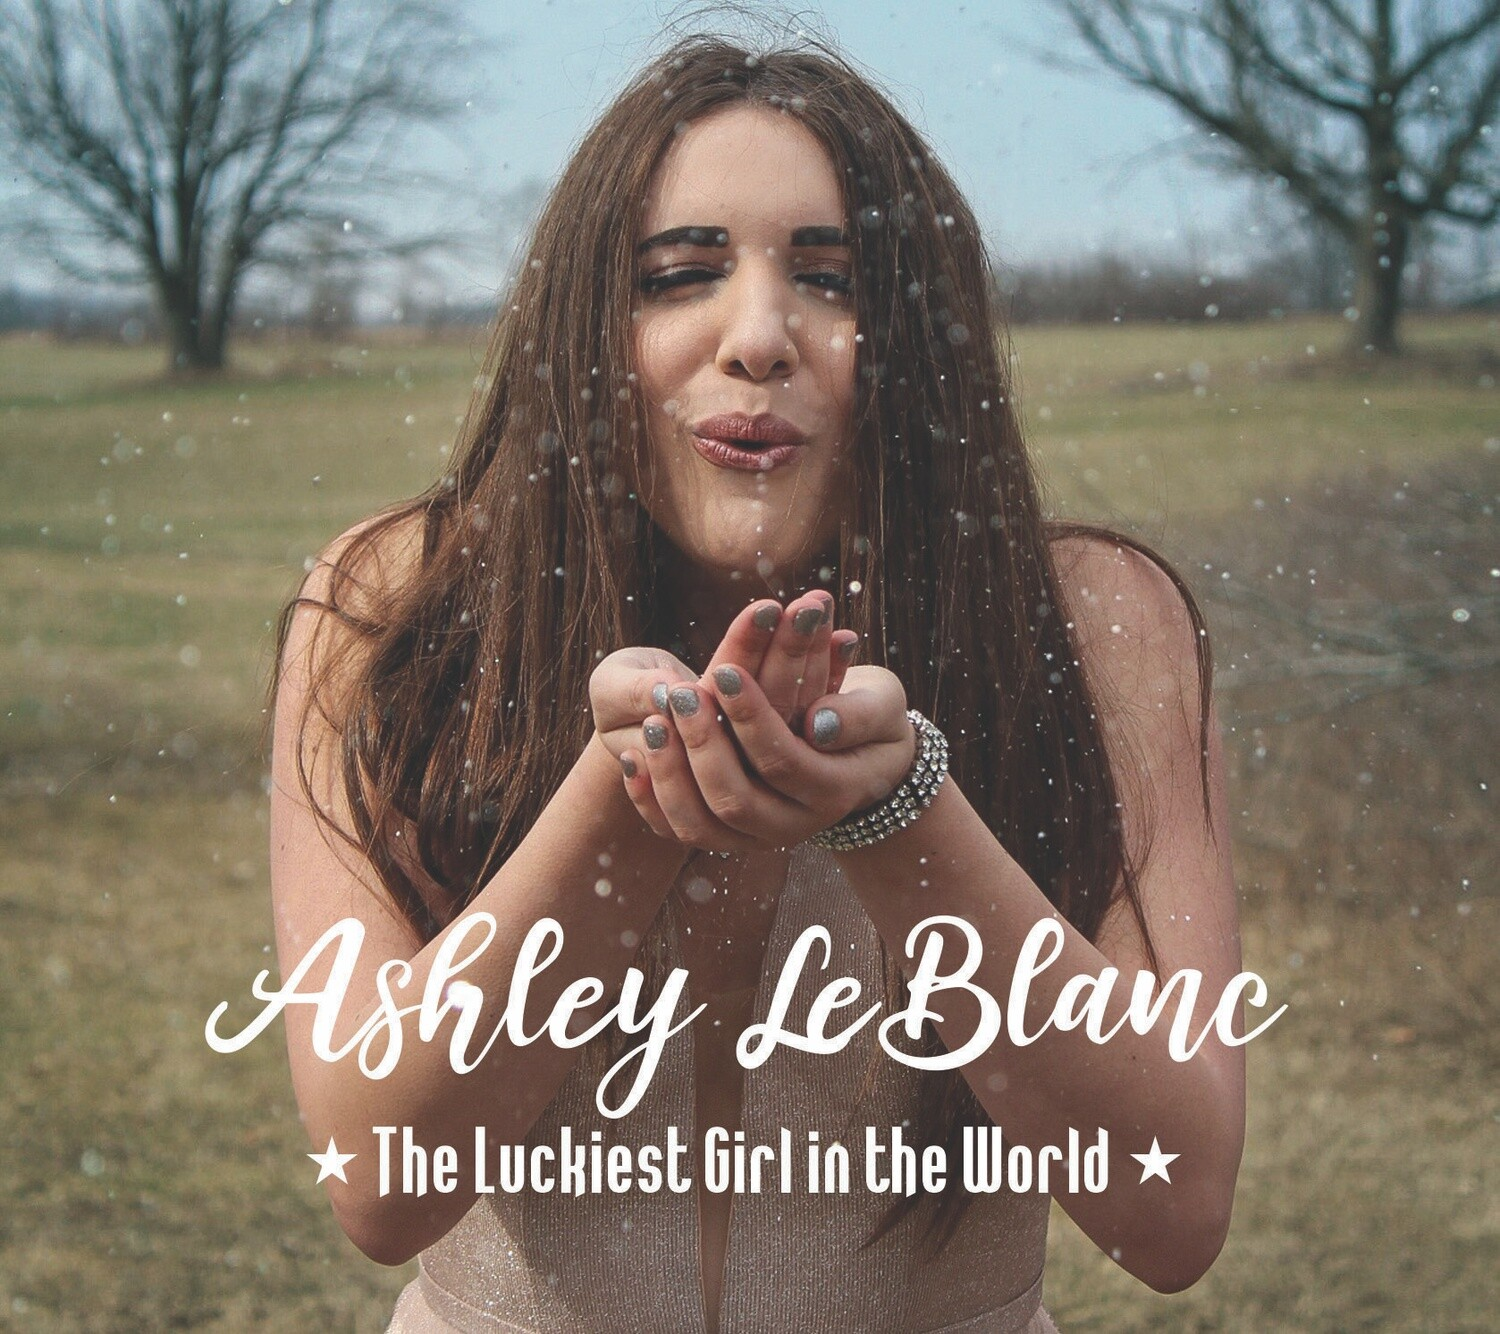 Ashley LeBlanc - The Luckiest Girl in the World - Autographed Physical CD